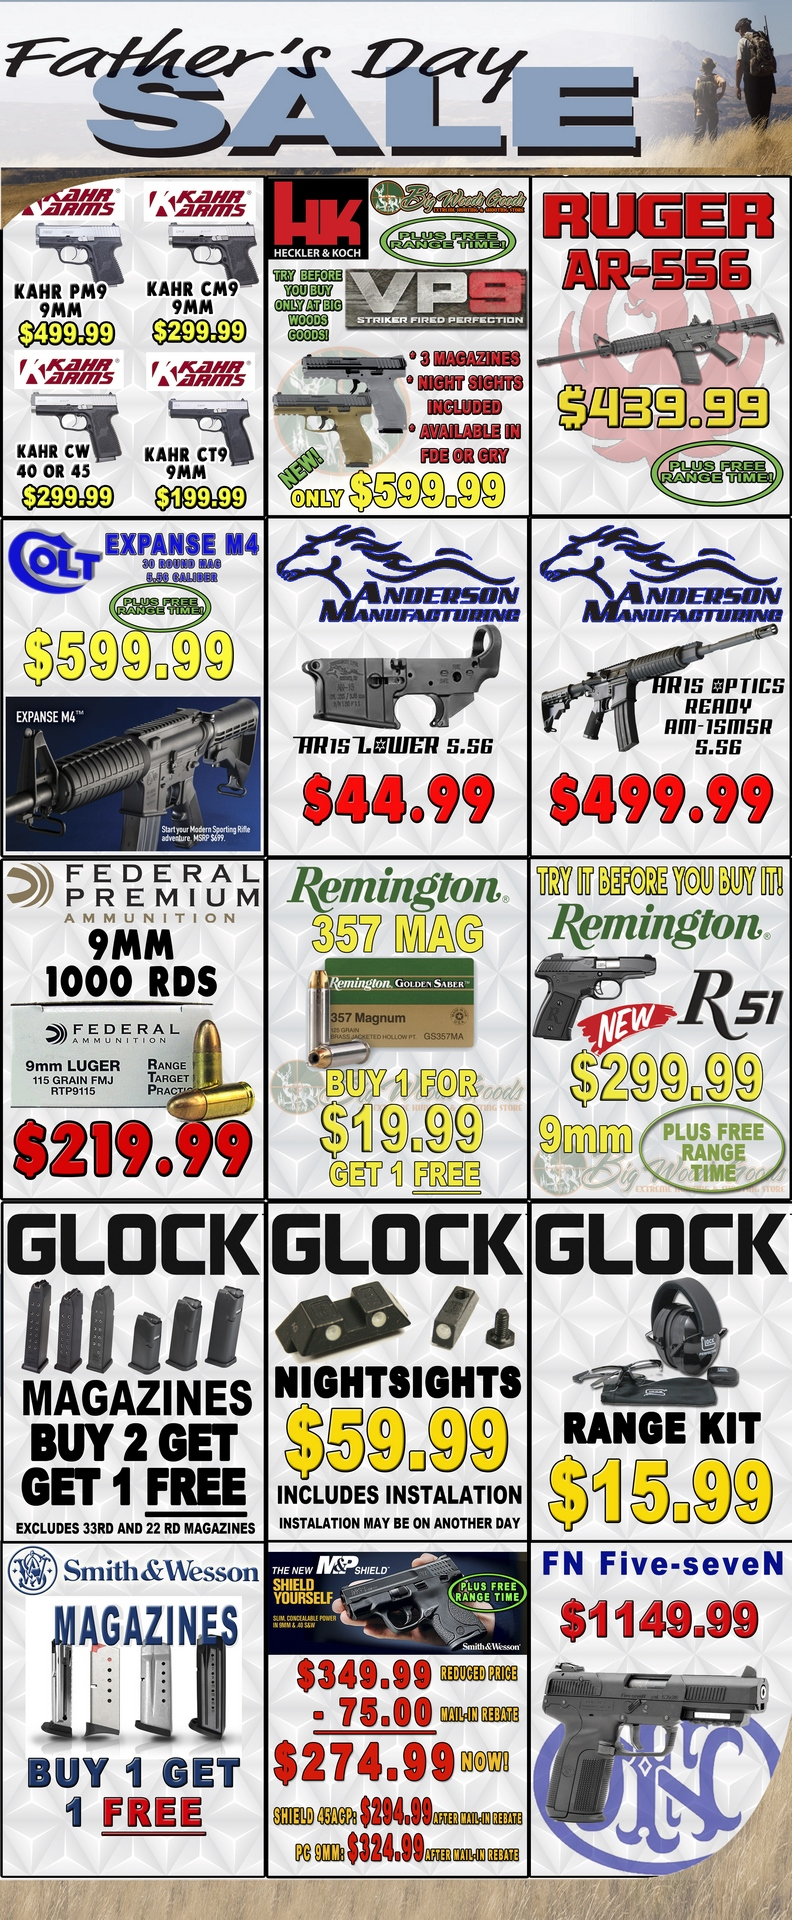 Fathers Day Specials on selected Kahr, HK, Ruger, Colt, Anderson Manufacturing, Glock, FN, Smith and Wesson products, and 9mm Federal and .357 magnum Remington ammunition